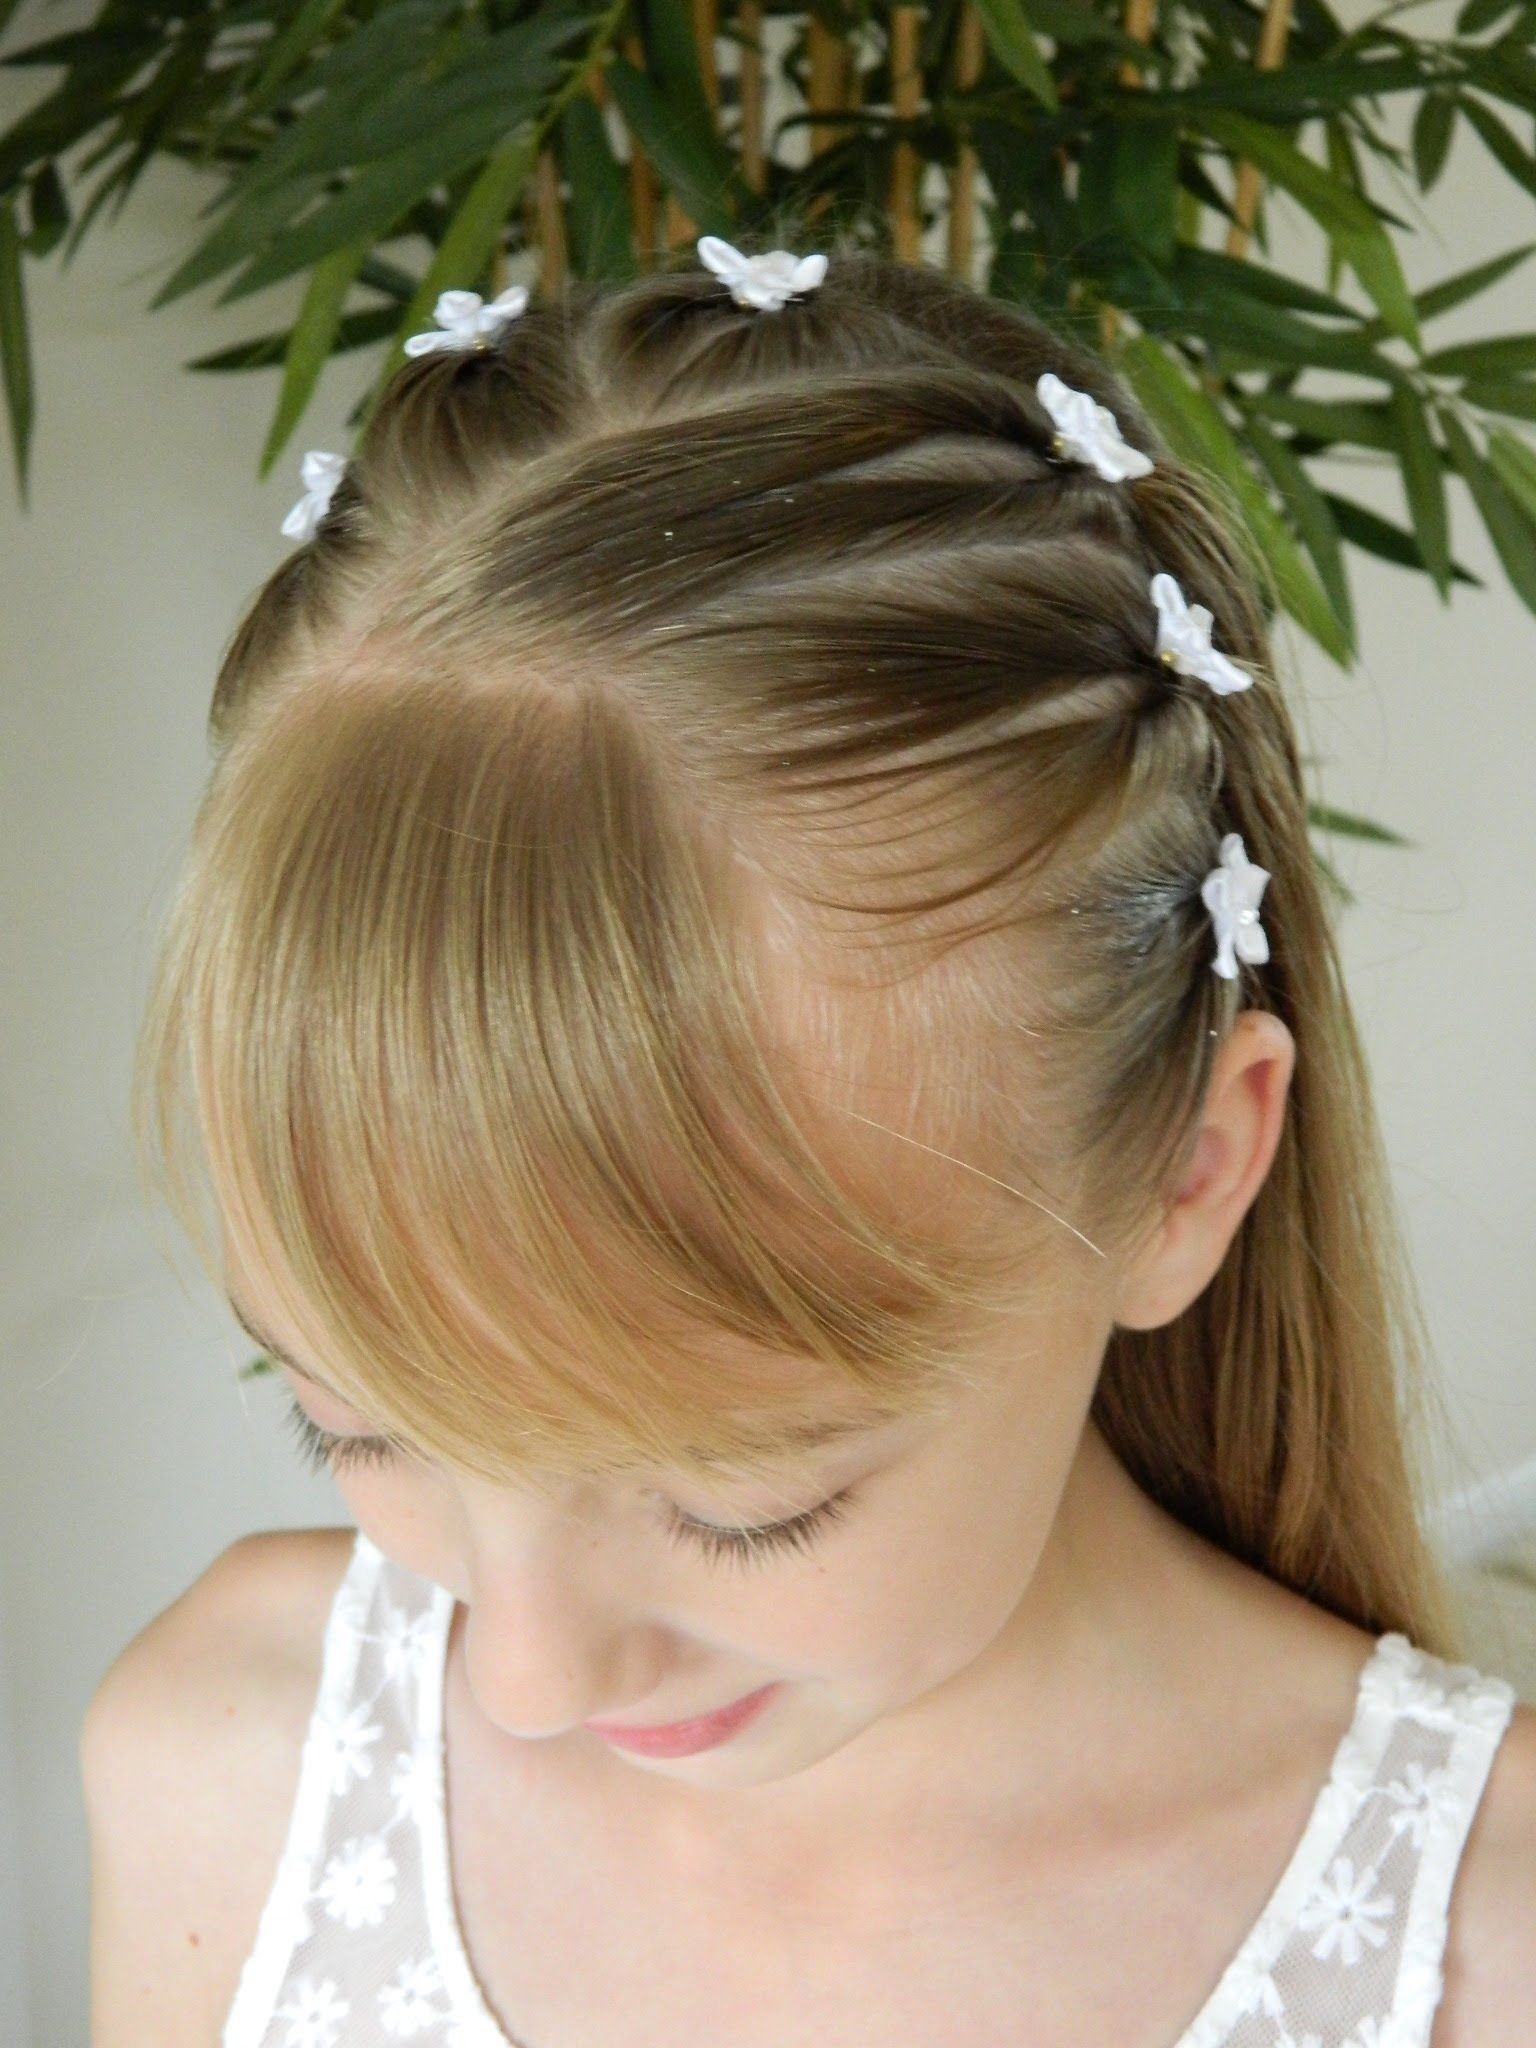 Best 25  First communion hair ideas on Pinterest | Communion ...